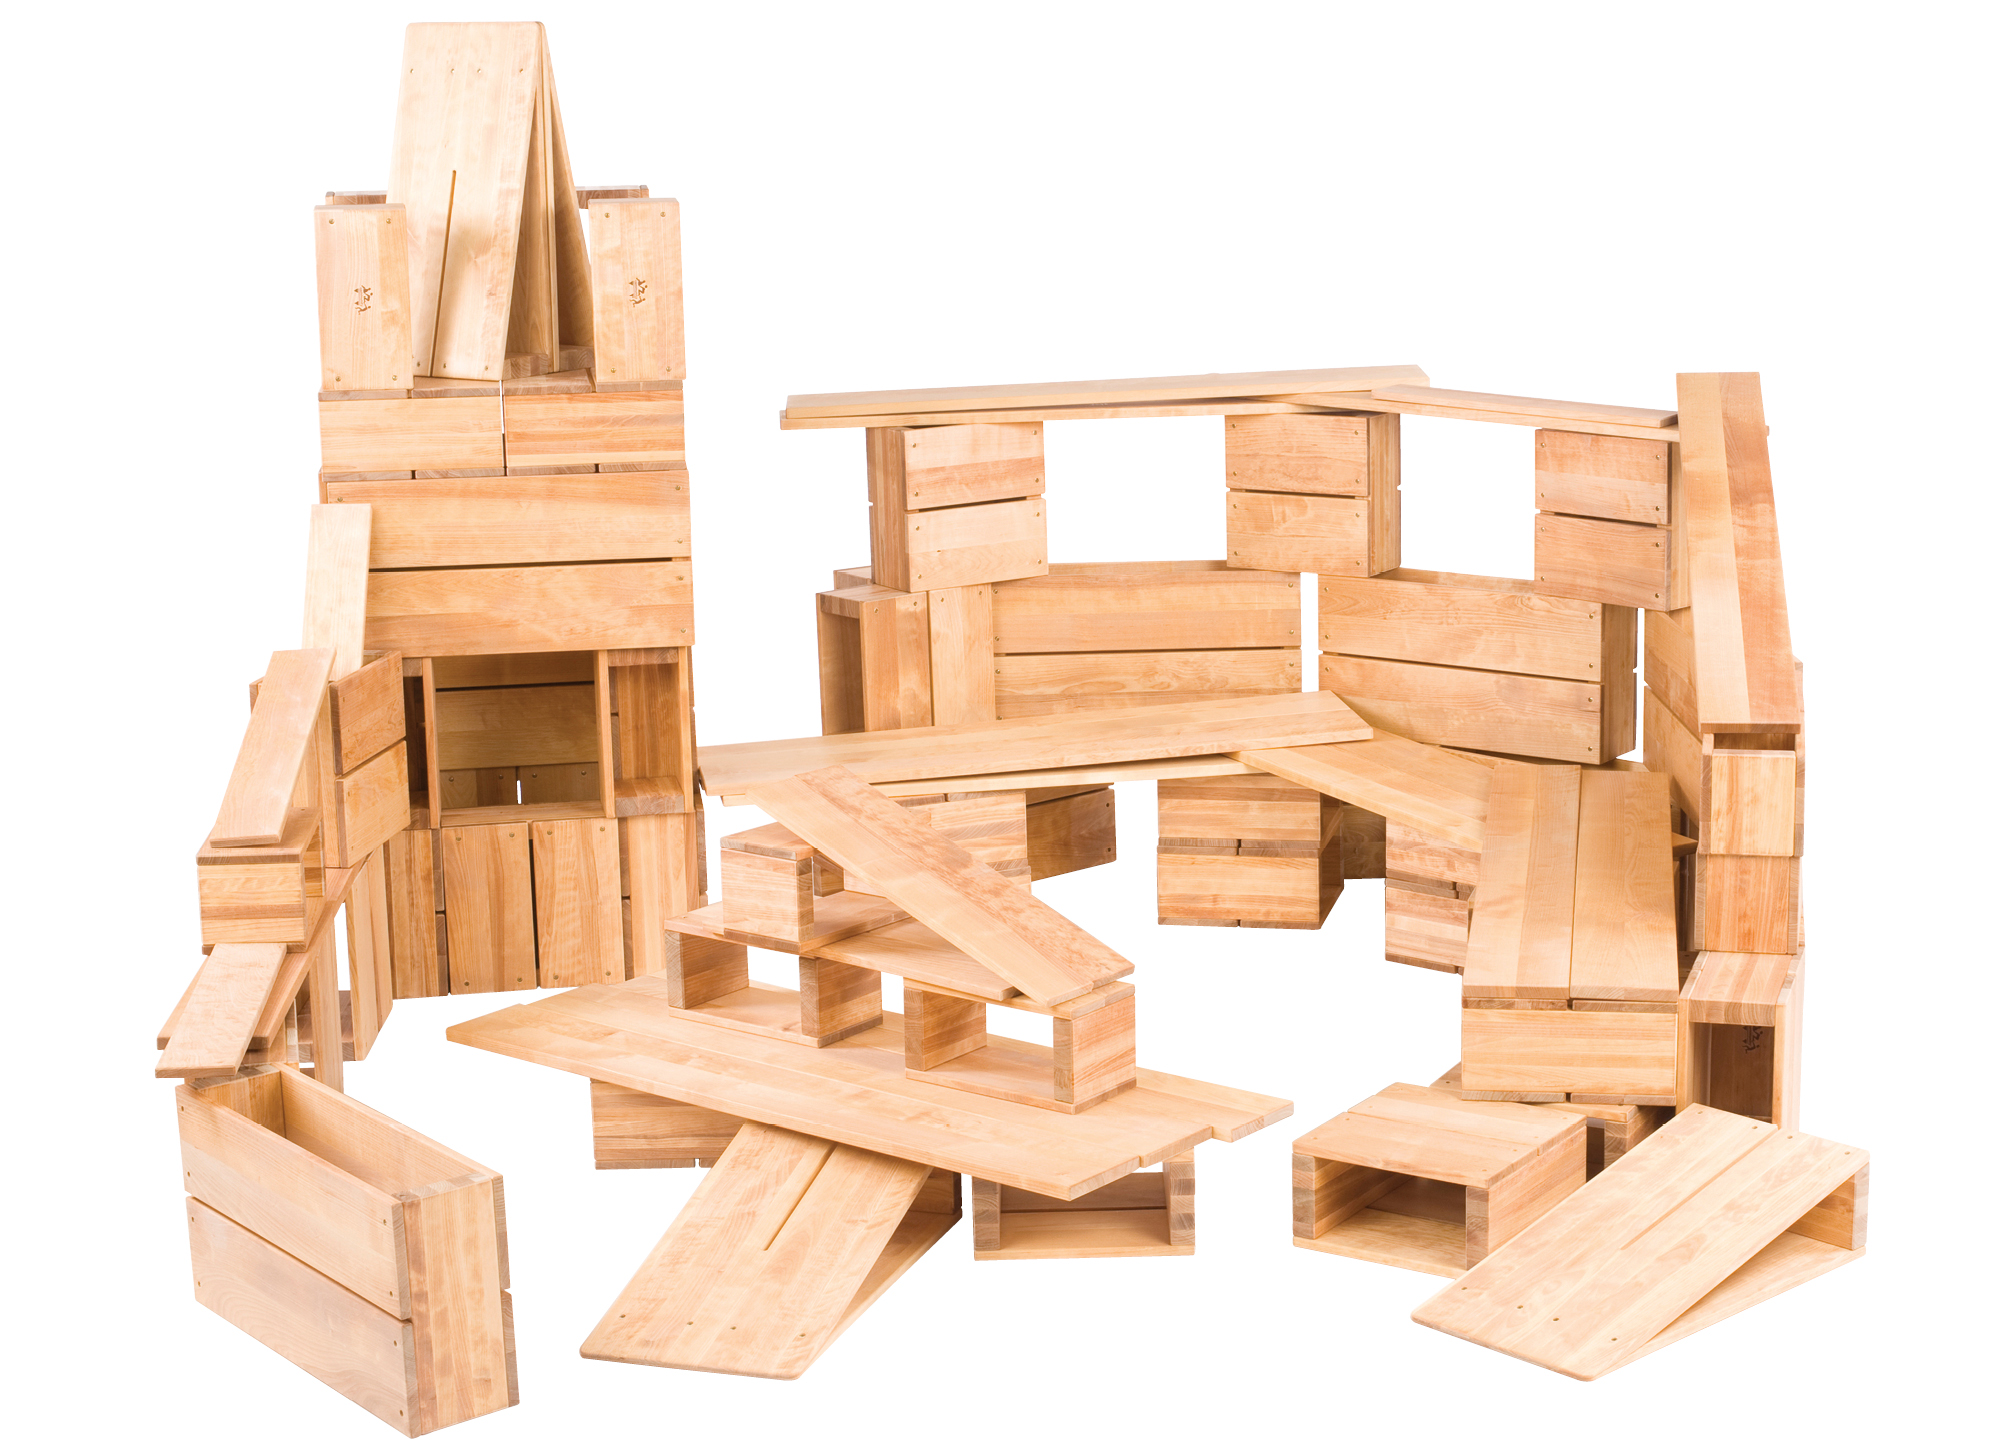 huge wooden building blocks set